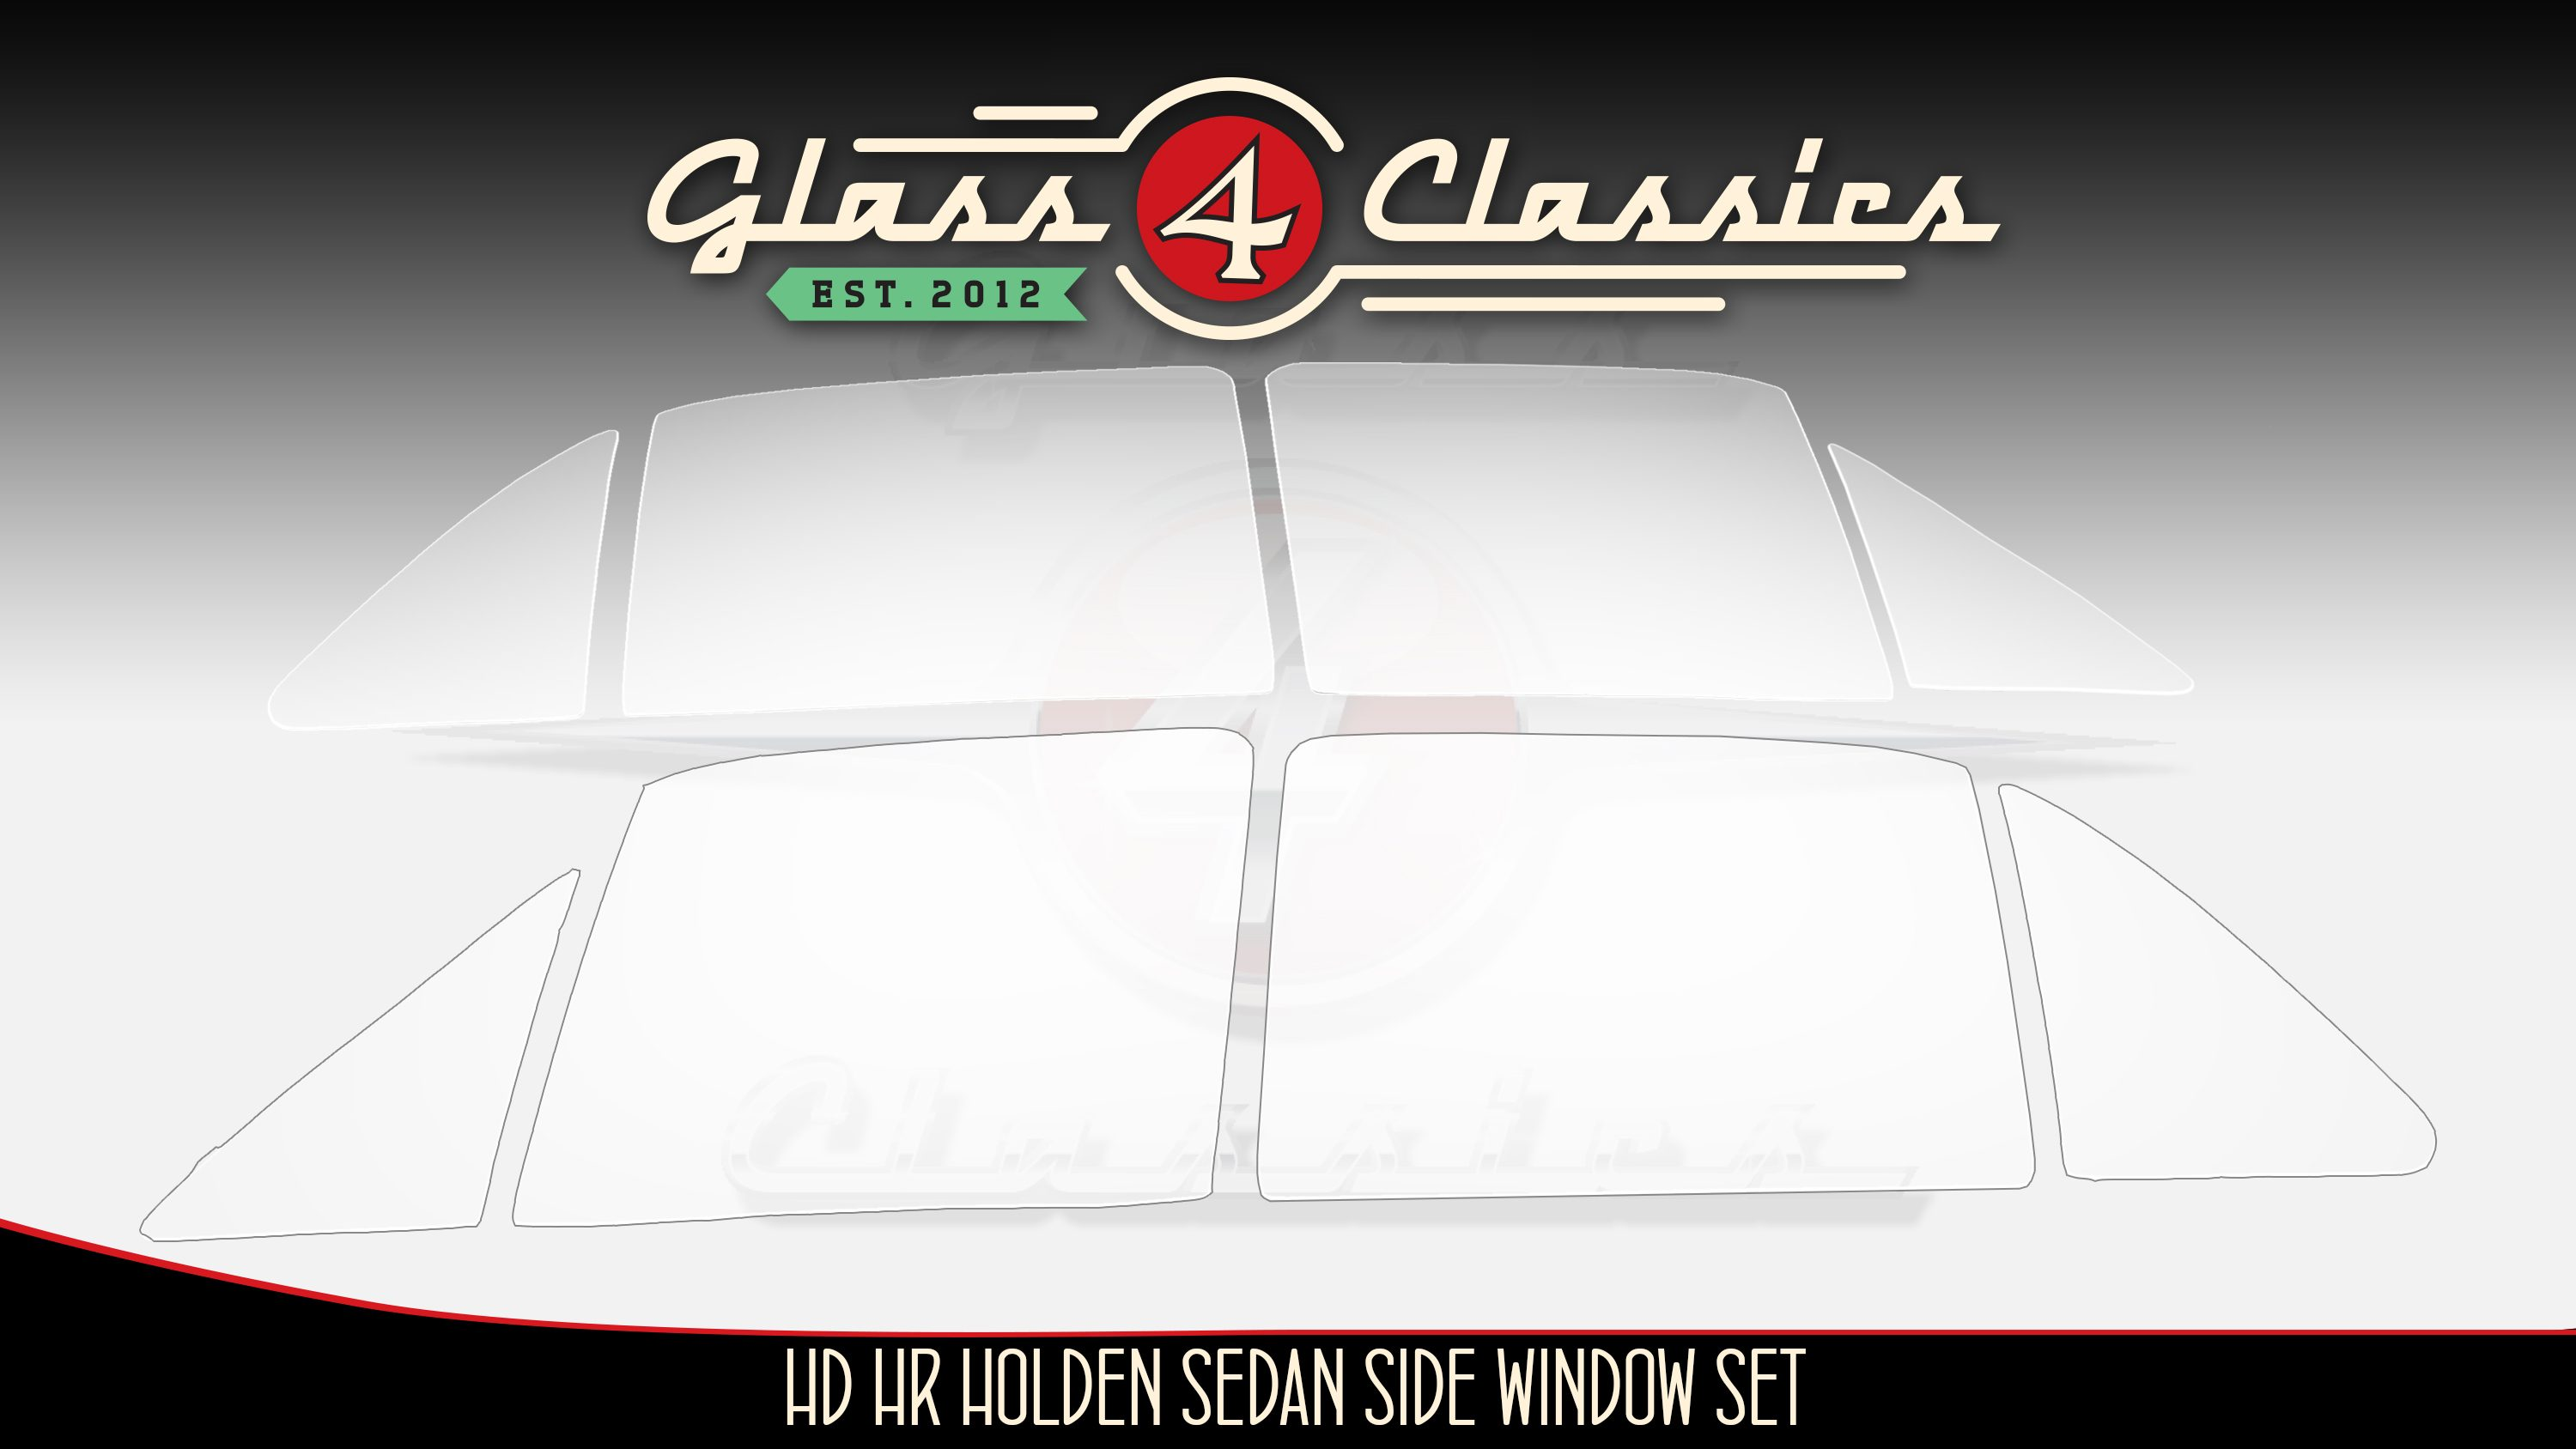 Hd hr holden sedan side windows for All side windows